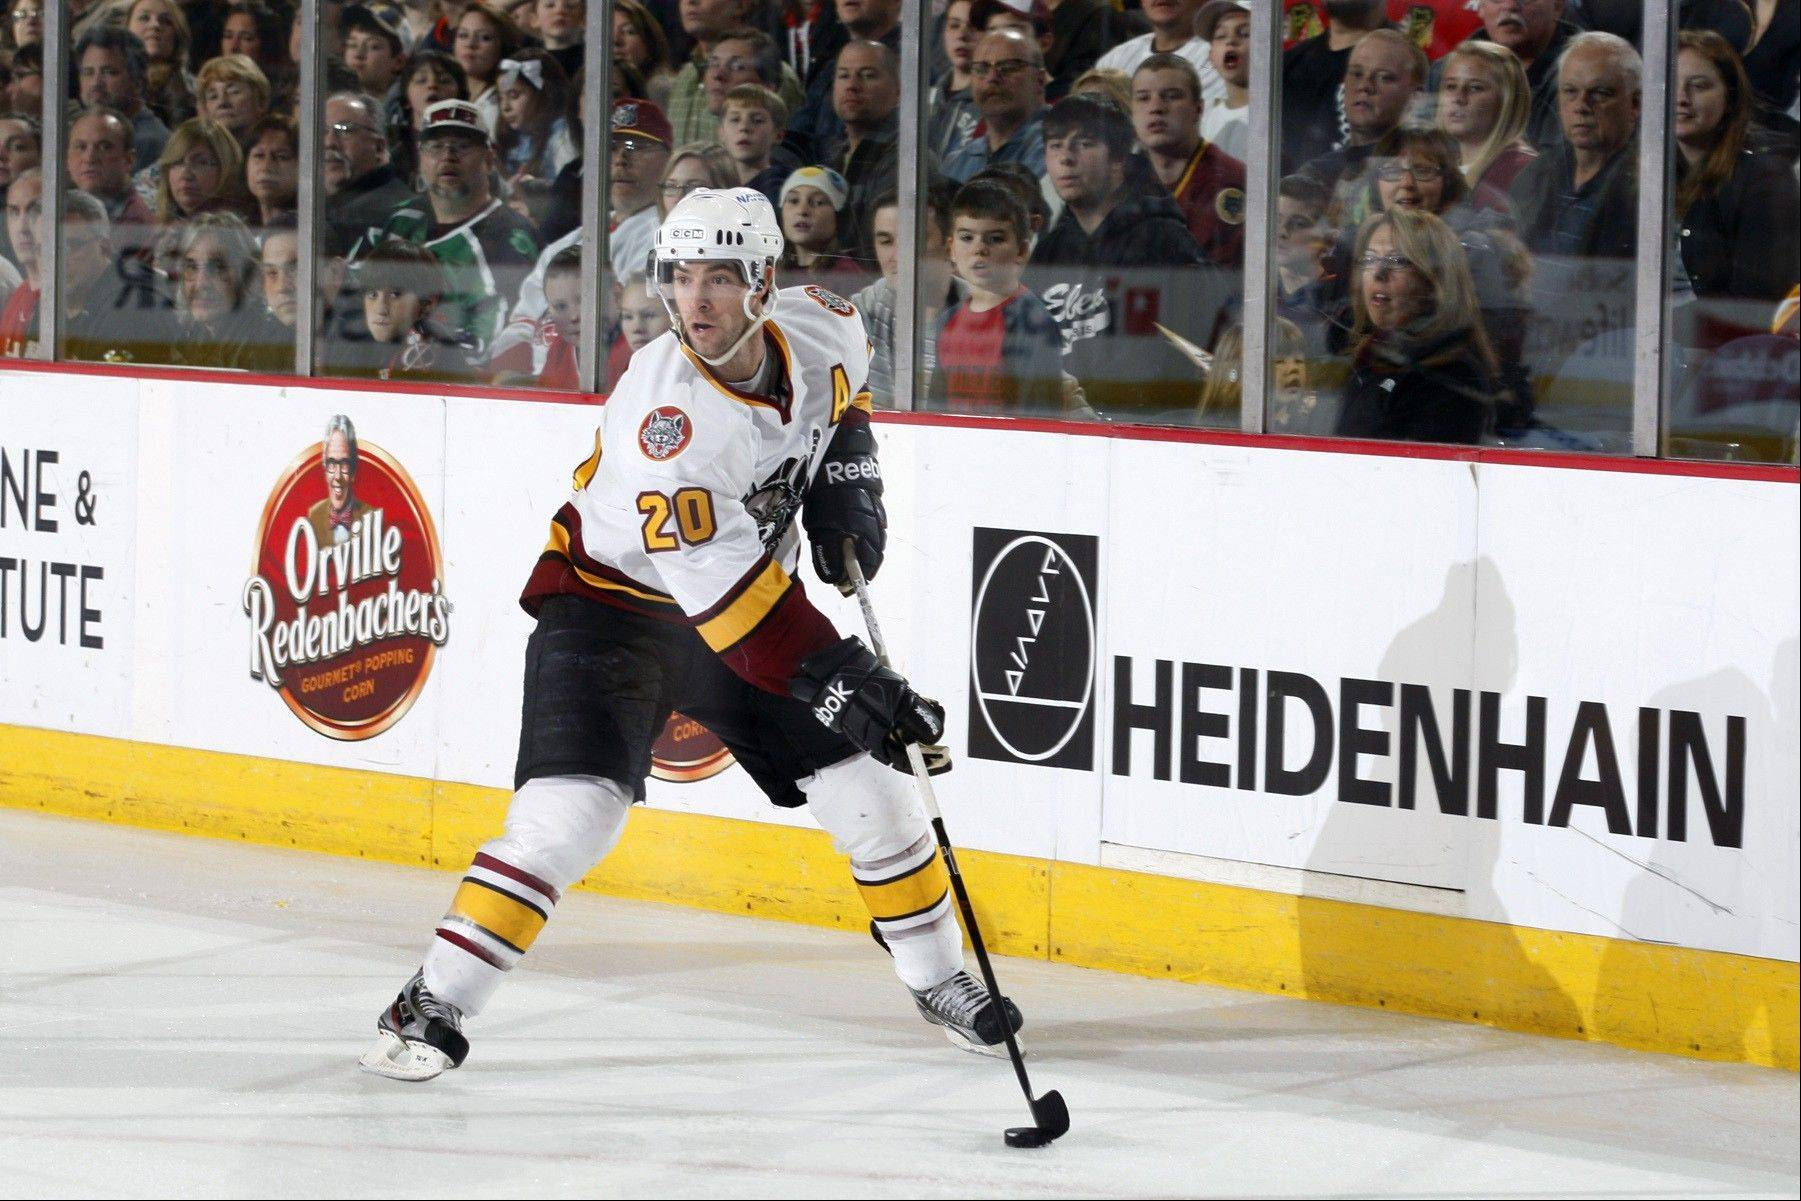 Forward Darren Haydar has been re-signed by the Chicago Wolves for the 2012-13 season. Haydar has scored 50 or more points in each of his 10 seasons as a pro.